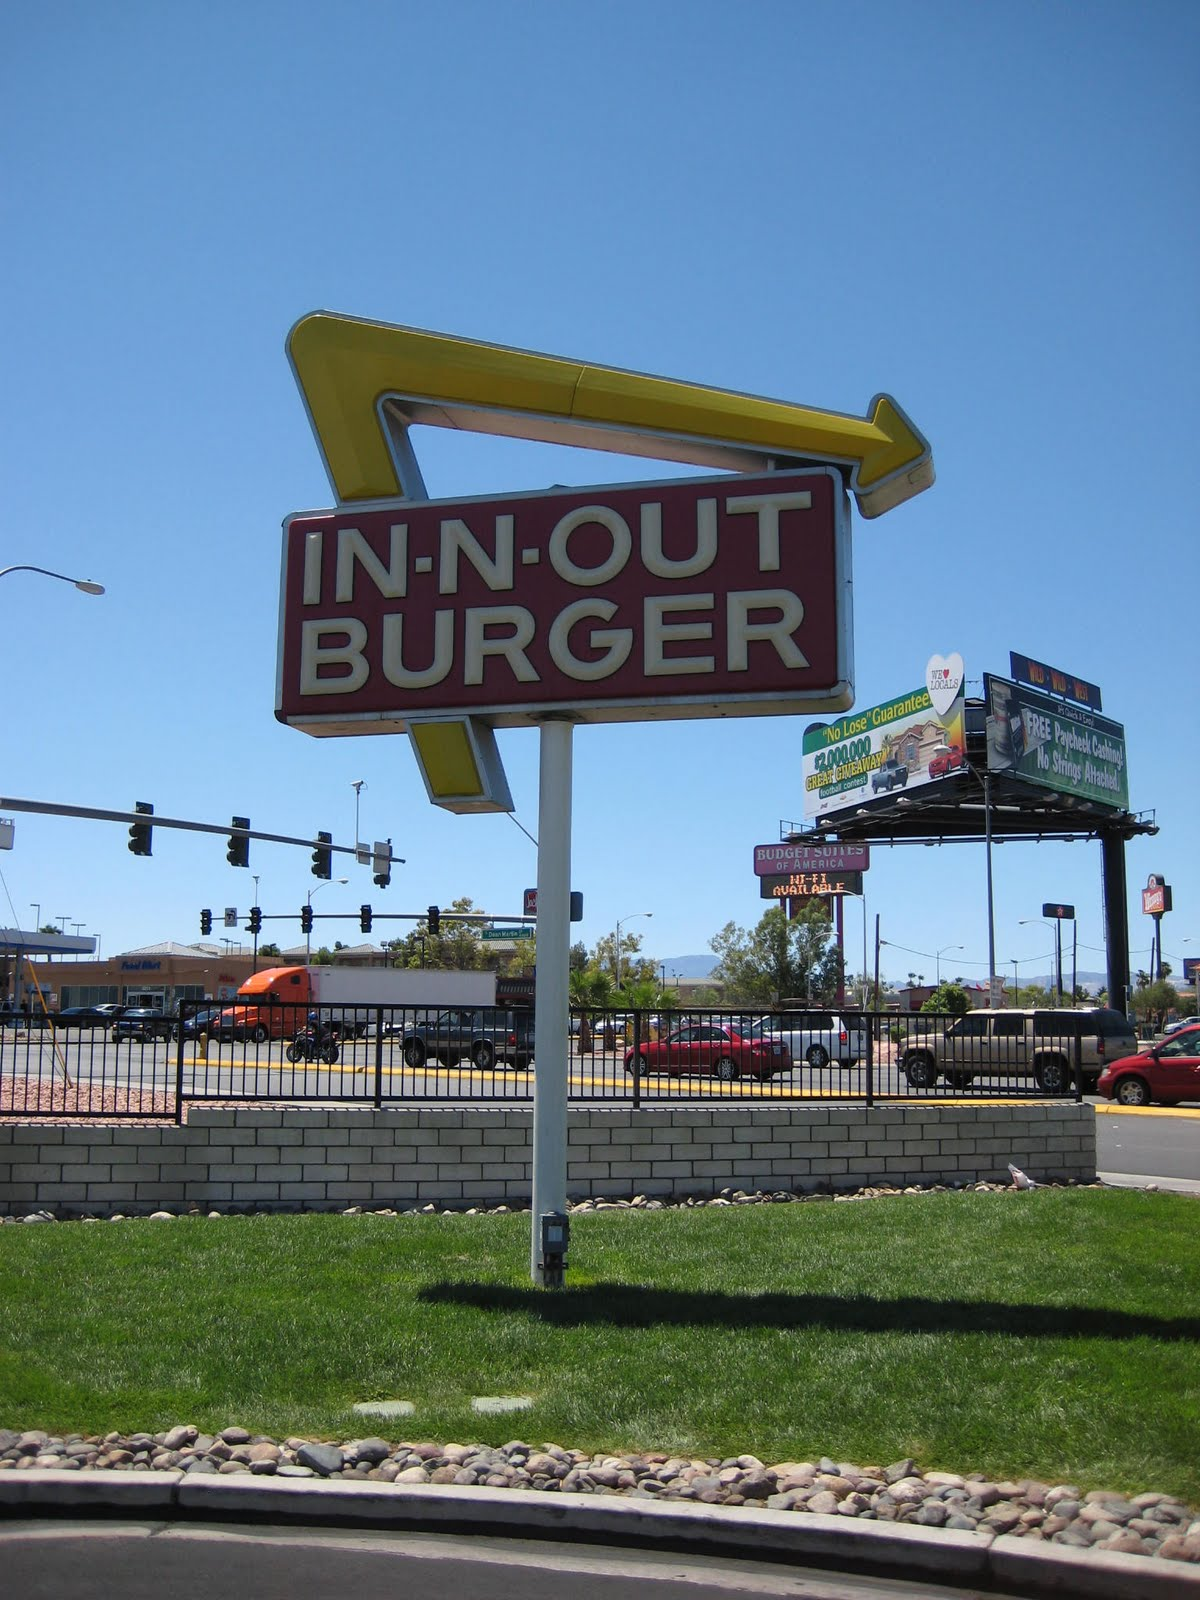 GourmetGorro: The Las Vegas Epic 2011 - In-n-Out Burger review